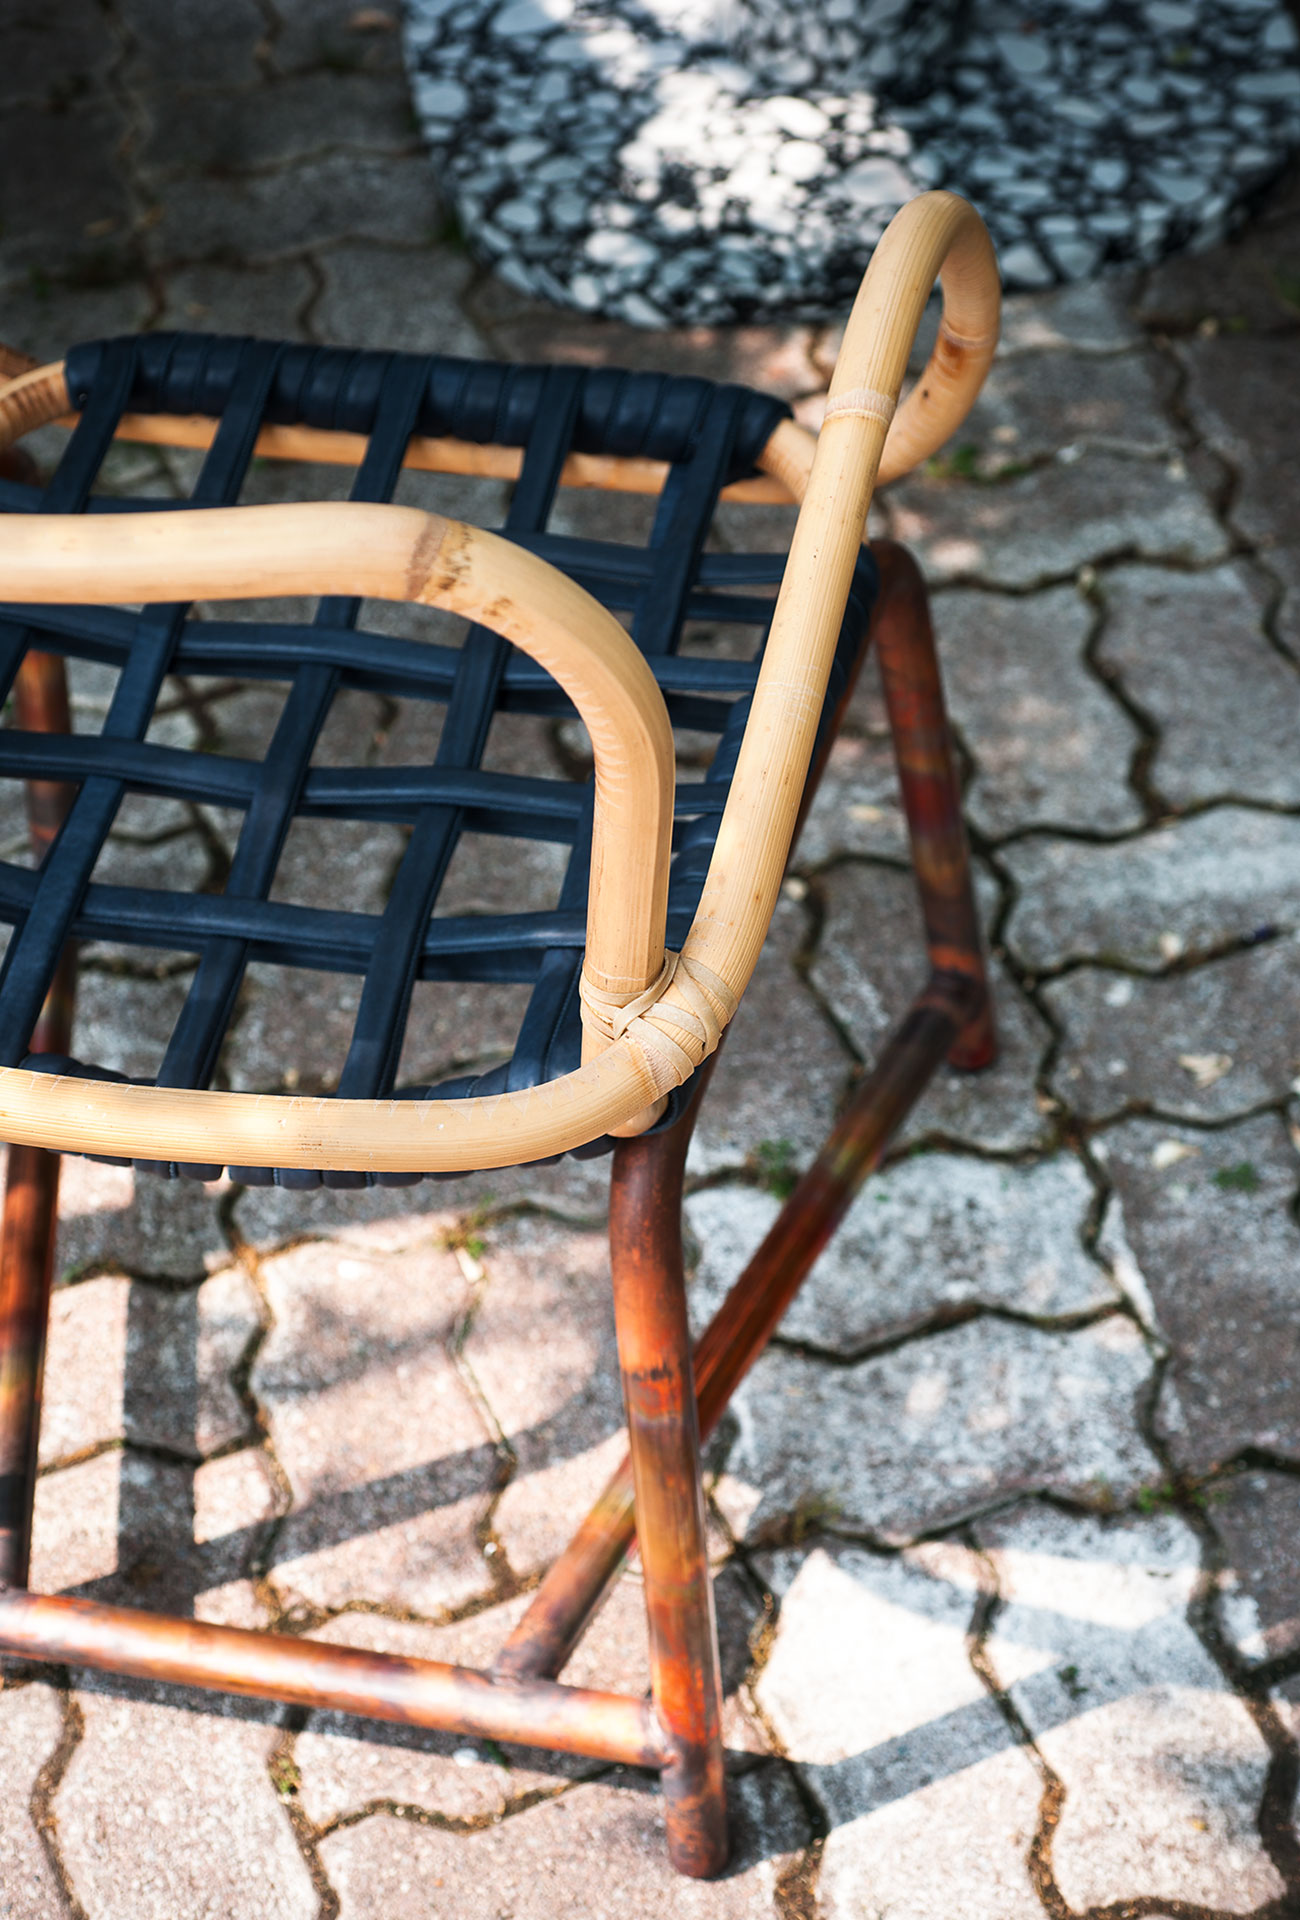 Manila leather chair baxter for Baxter paola navone